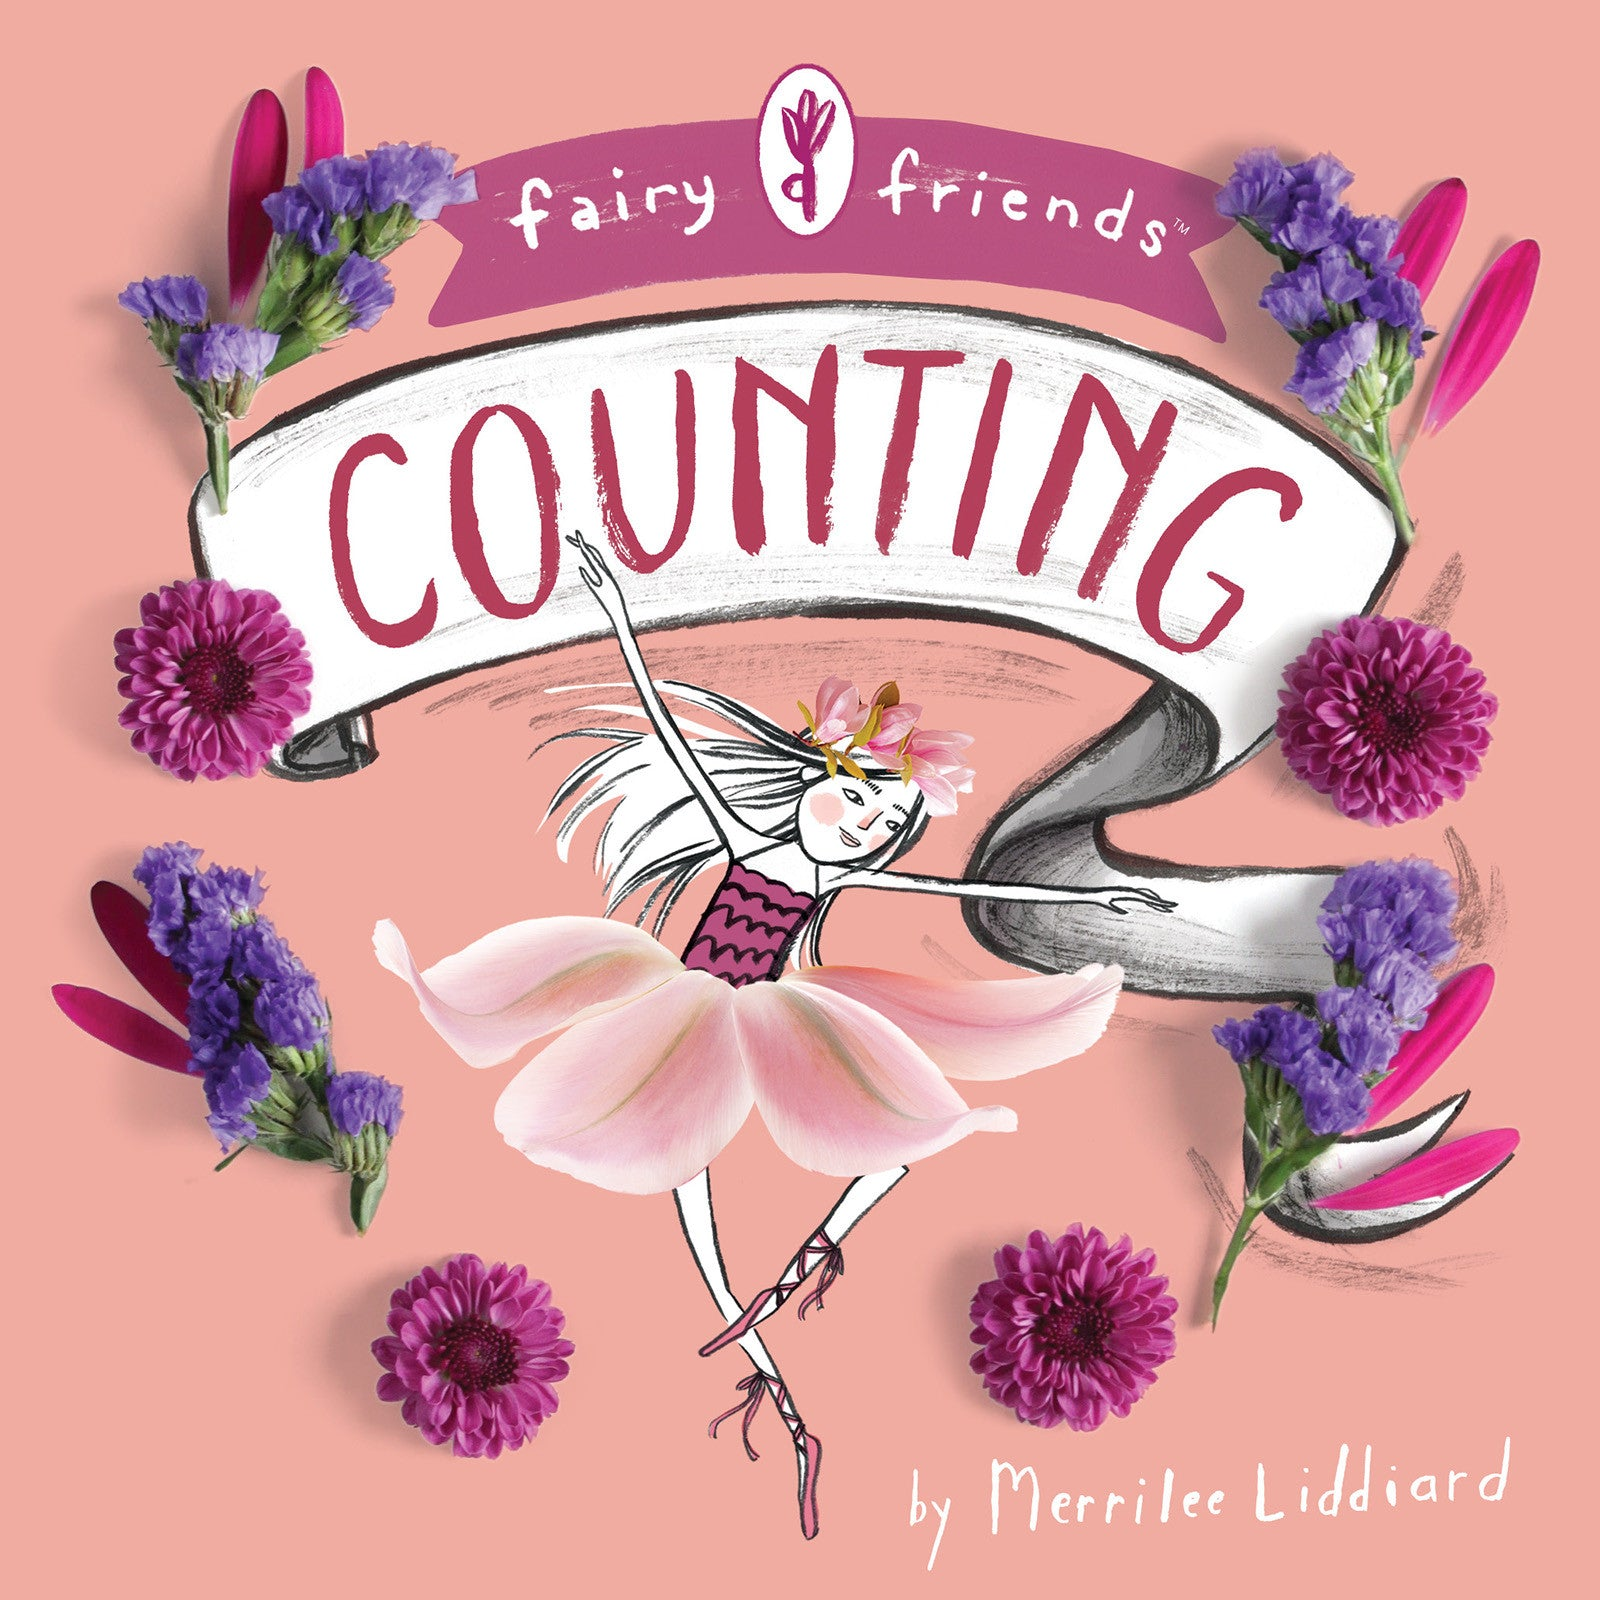 fairy friends counting cover